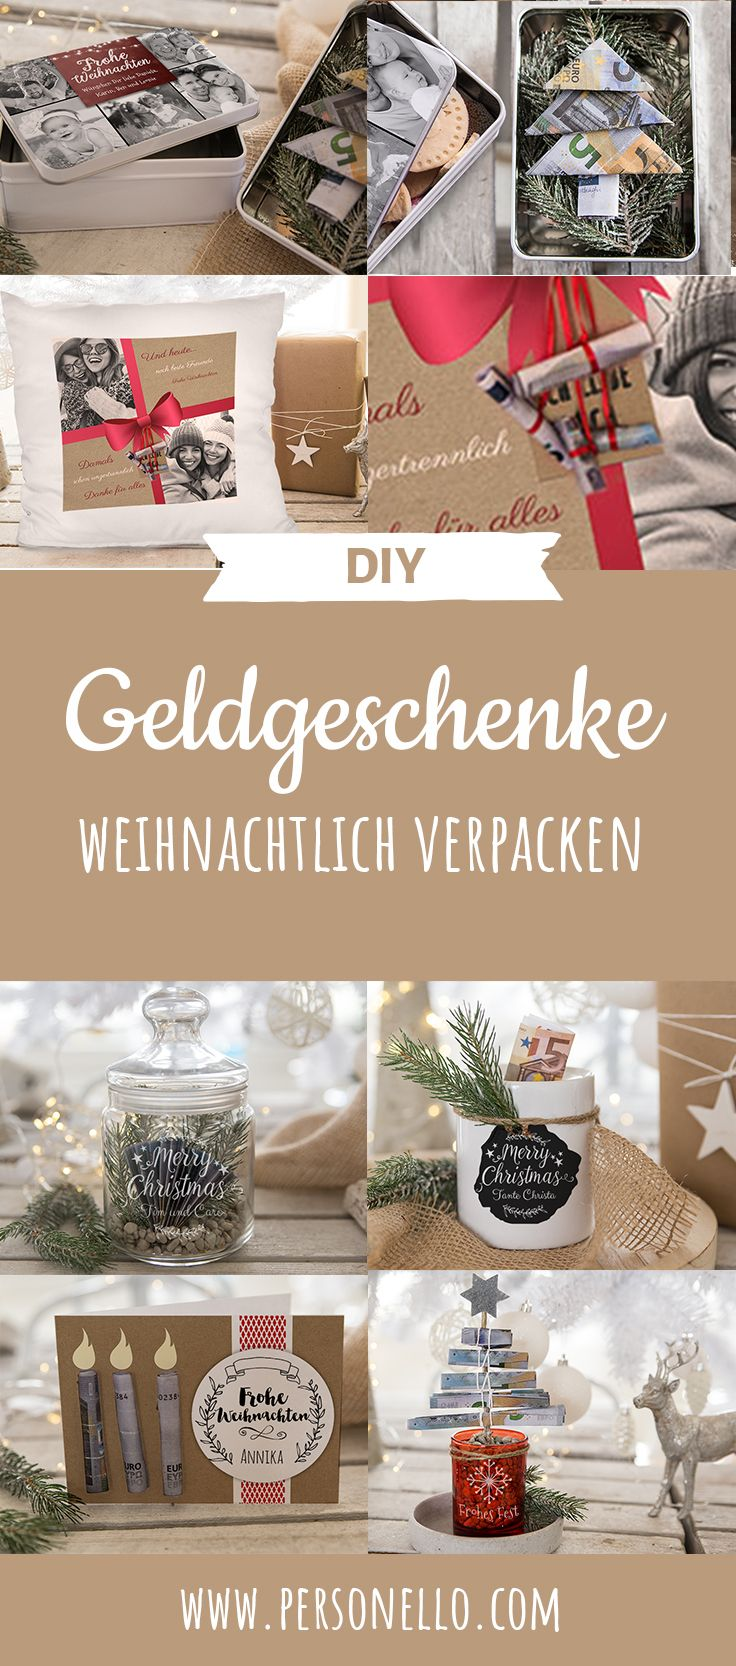 25 einzigartige weihnachtsgeld ideen auf pinterest geld geschenk weihnachten geldgeschenke. Black Bedroom Furniture Sets. Home Design Ideas